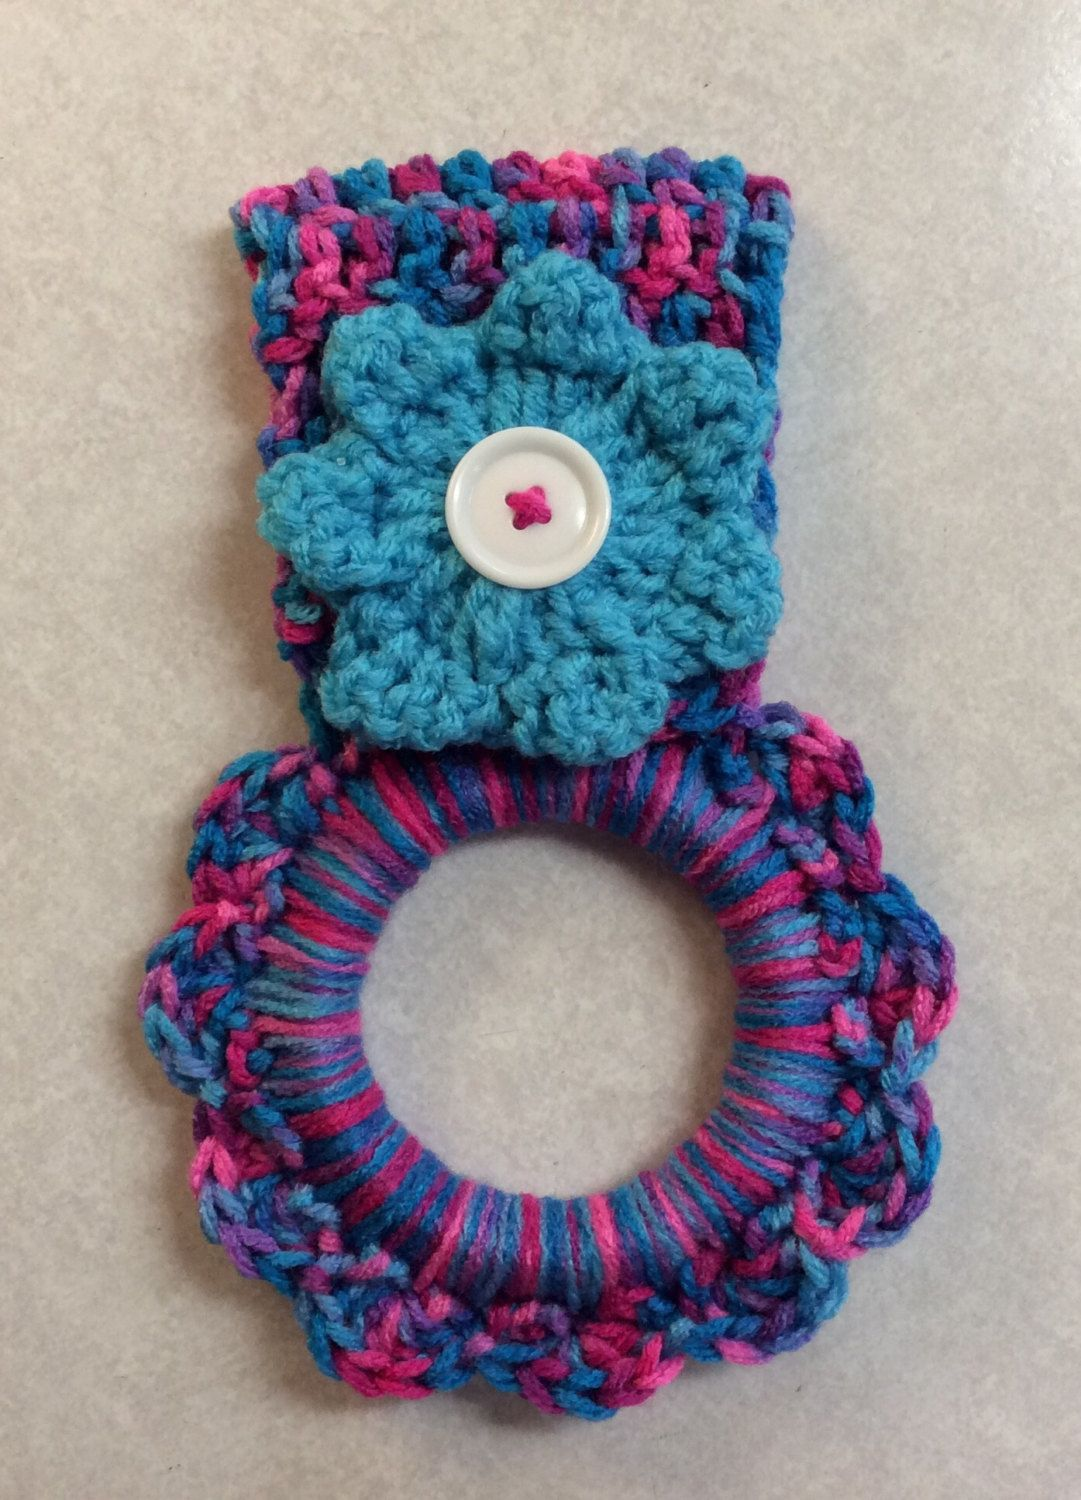 Pin by TheSunshineBoutique on Knitts Crochets Felts | Pinterest ...